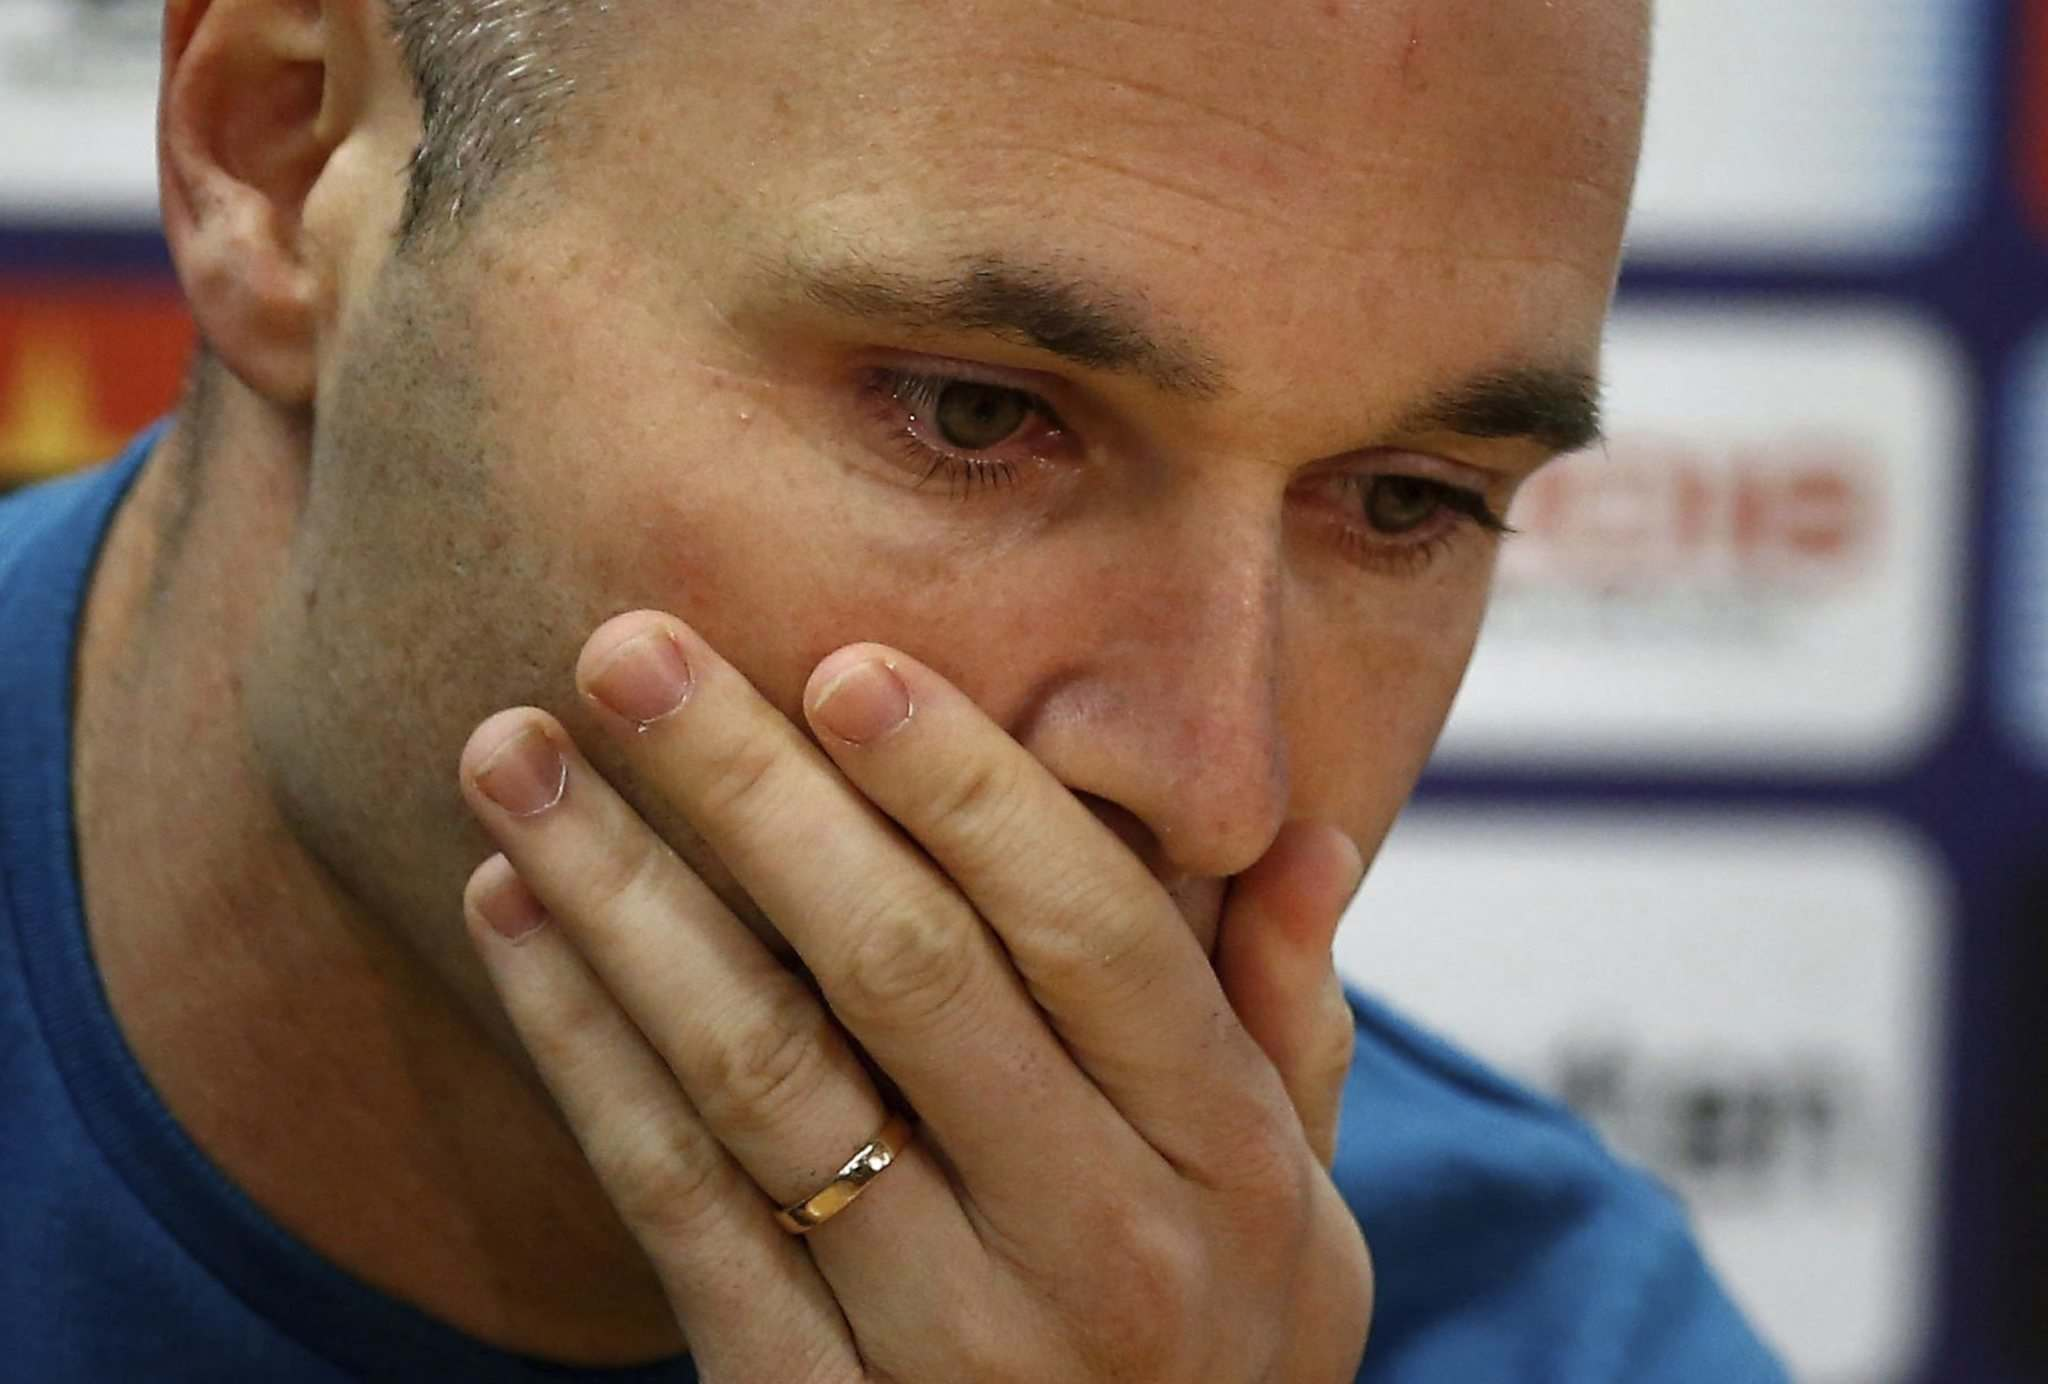 Manu Fernandez  The Associated PressF.C. Barcelona player Andres Iniesta reacts during a news conference announcing he is leaving the club in Barcelona Spain Friday April. 27 2018. Andres Iniesta says that he will leave Barcelona this summer after 1